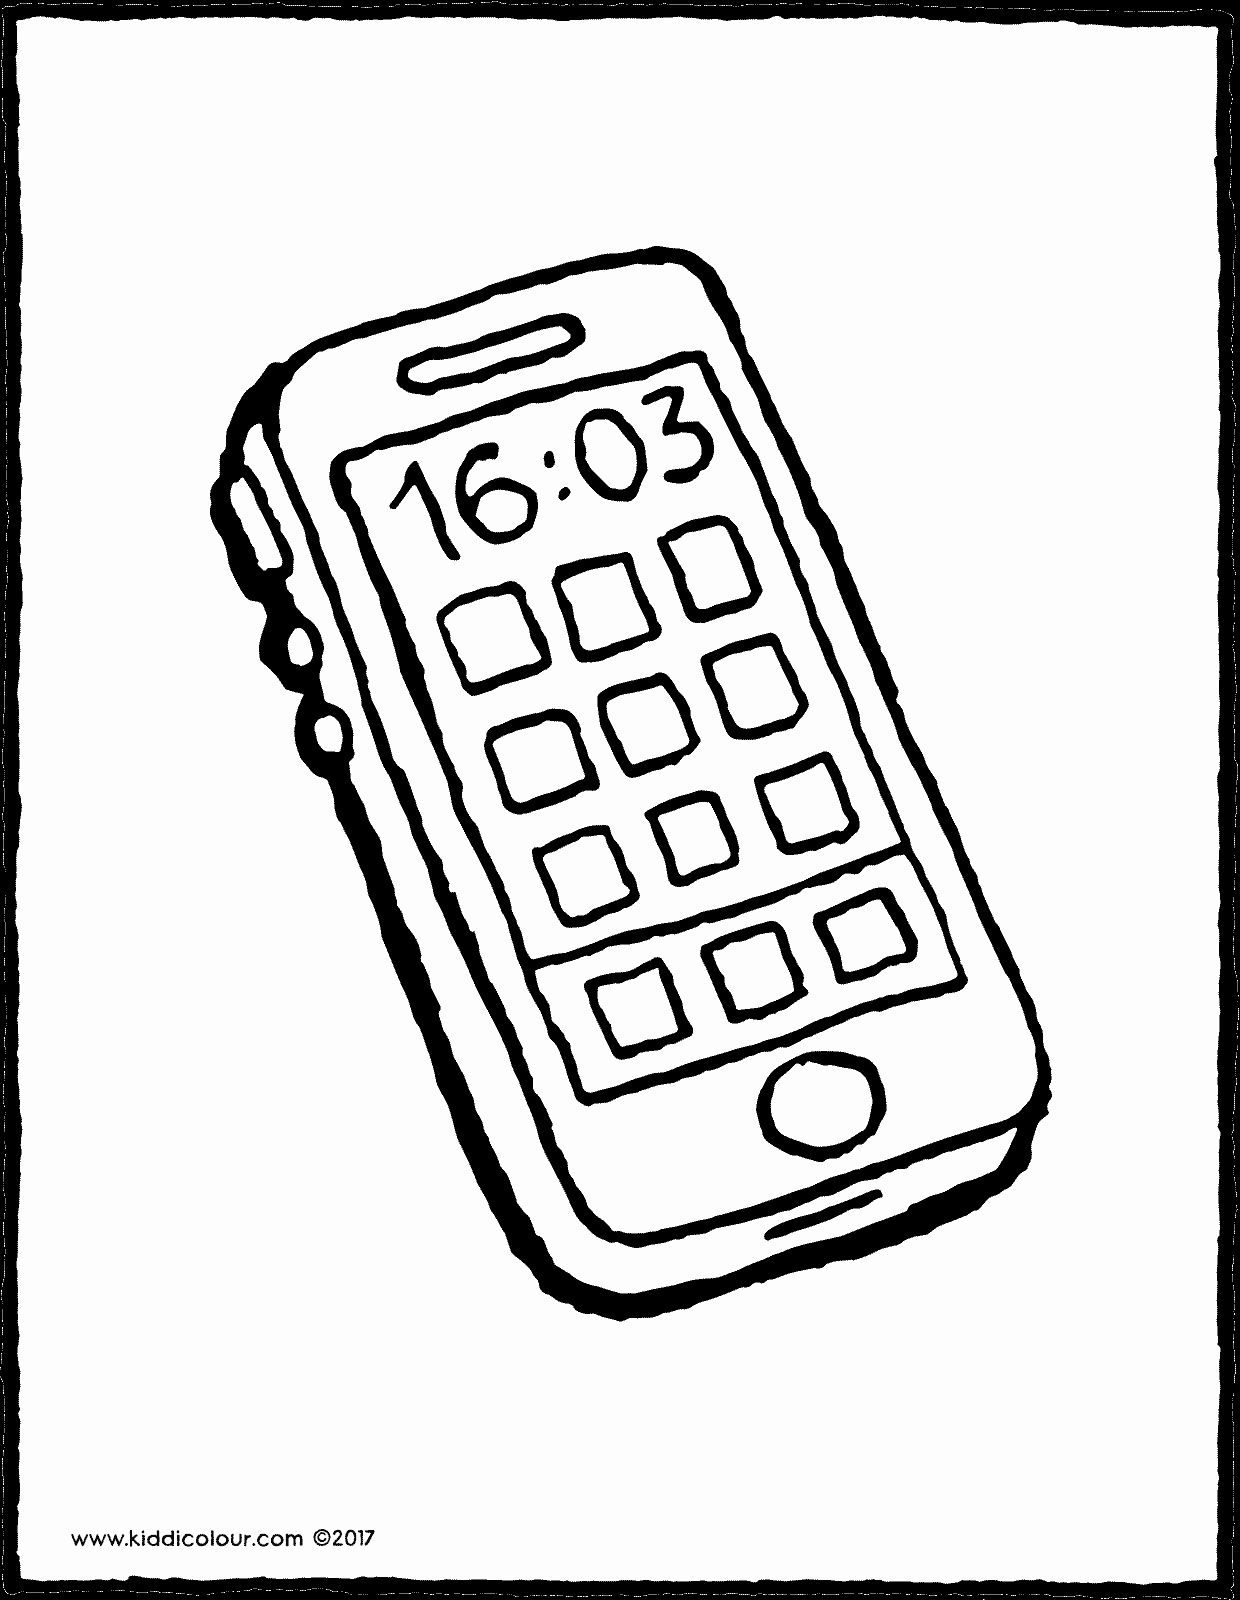 Cell Phone Coloring Page Elegant Mobile Phone Kiddicolour Coloring Pages Candy Coloring Pages Curious George Coloring Pages